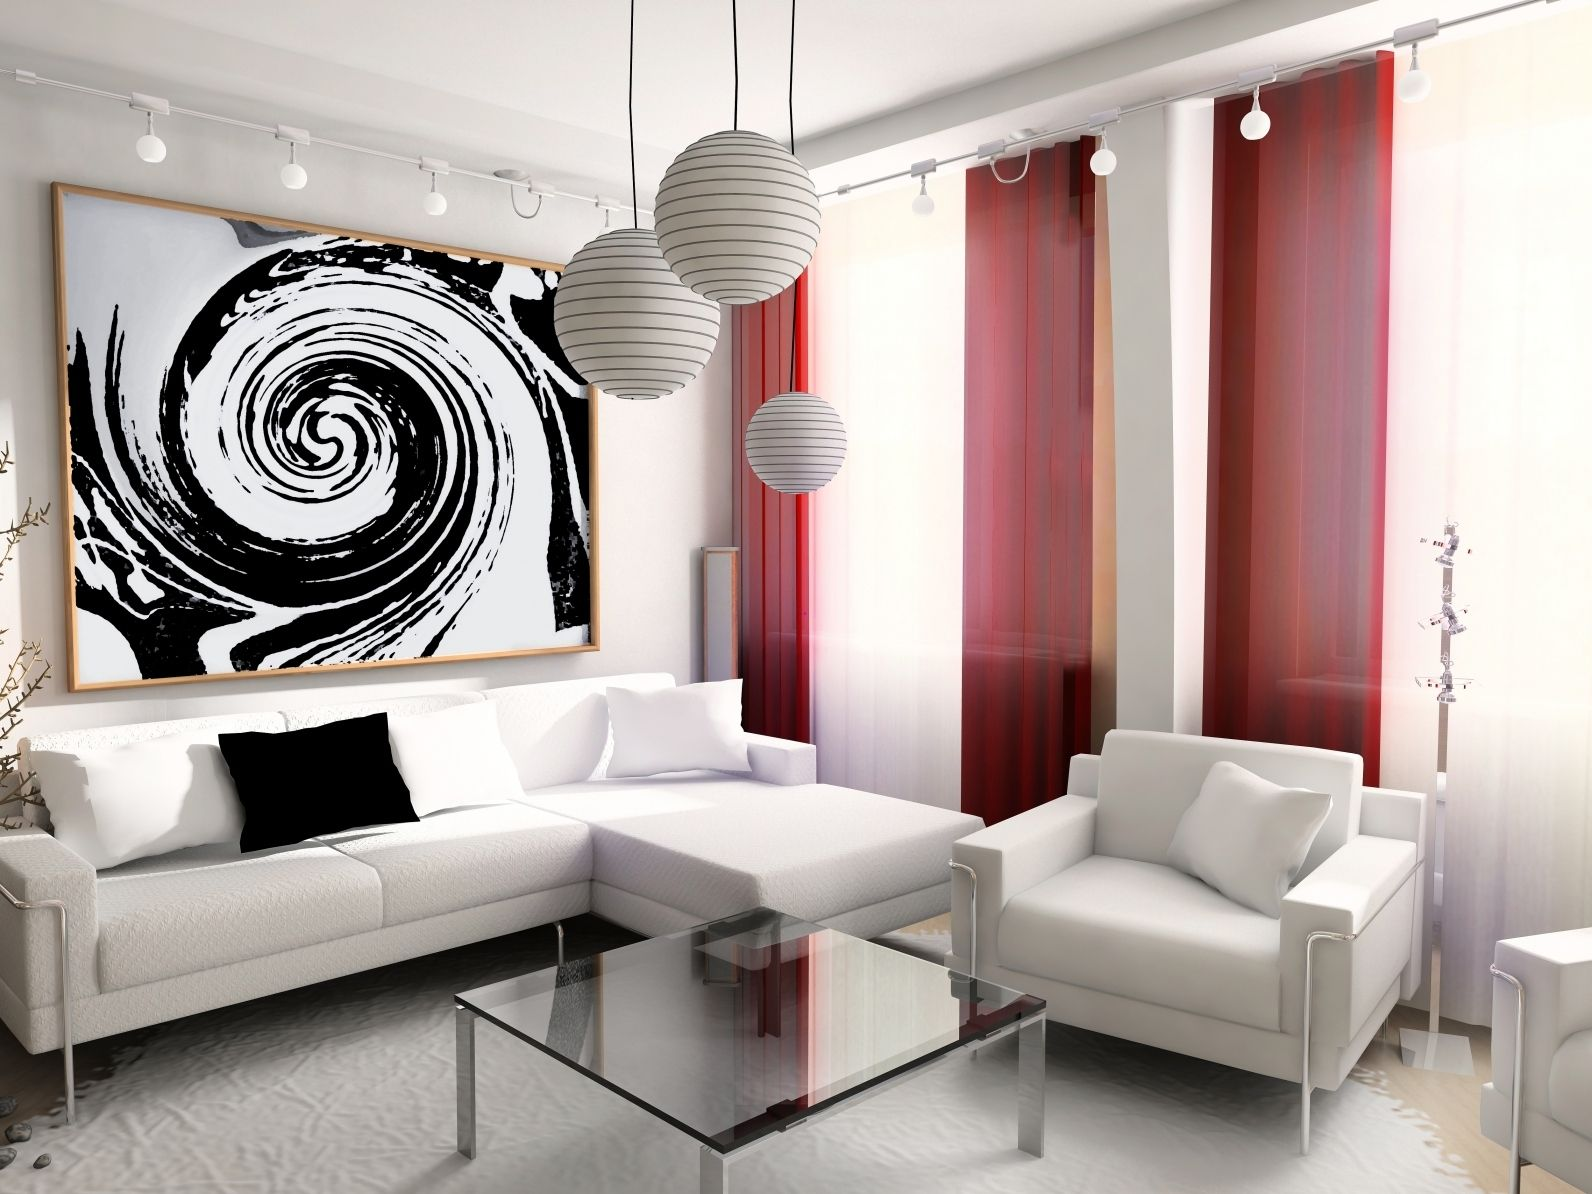 30 Creative Living Room Designs | Stuff Kit | Living Spaces at Home ...